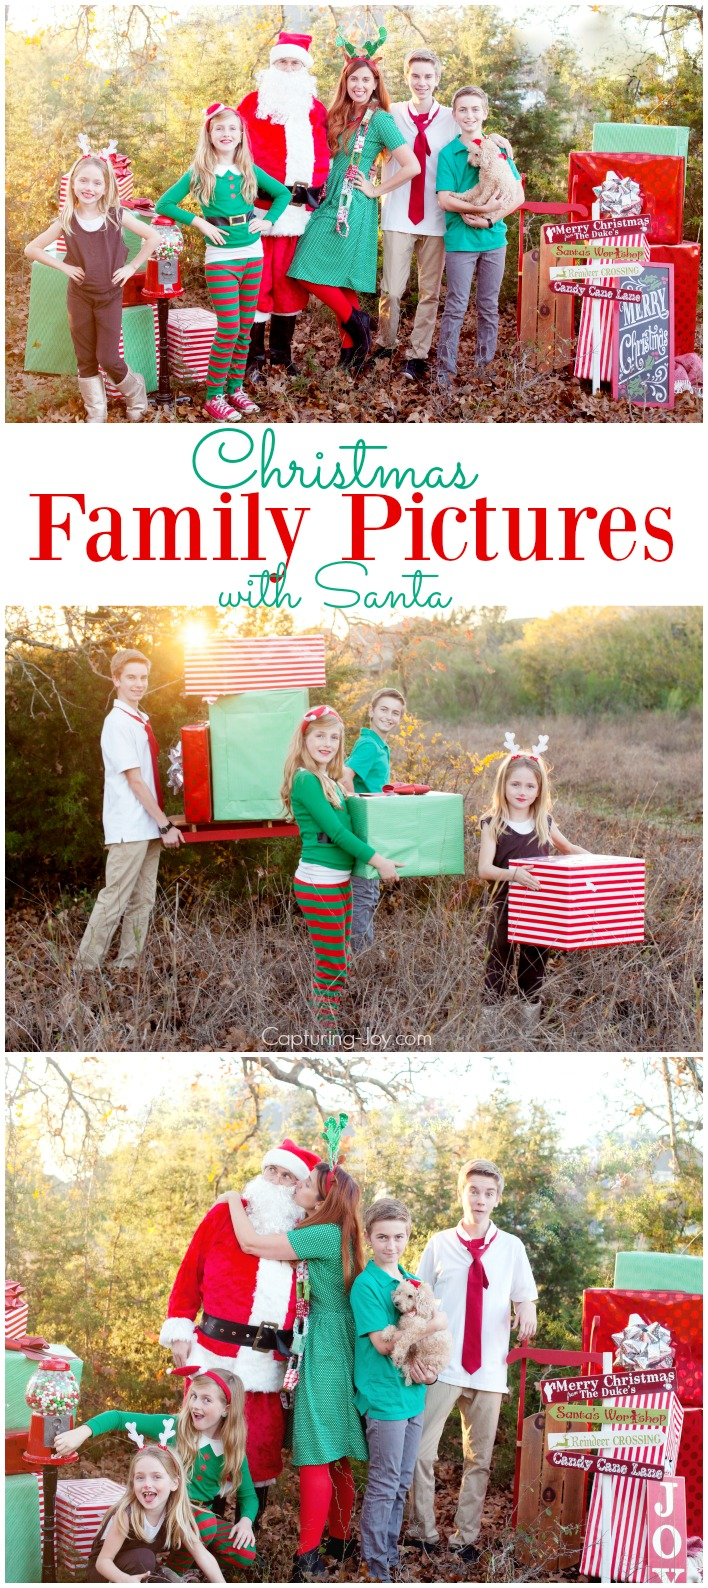 Christmas Family Pictures with Santa and his helpers